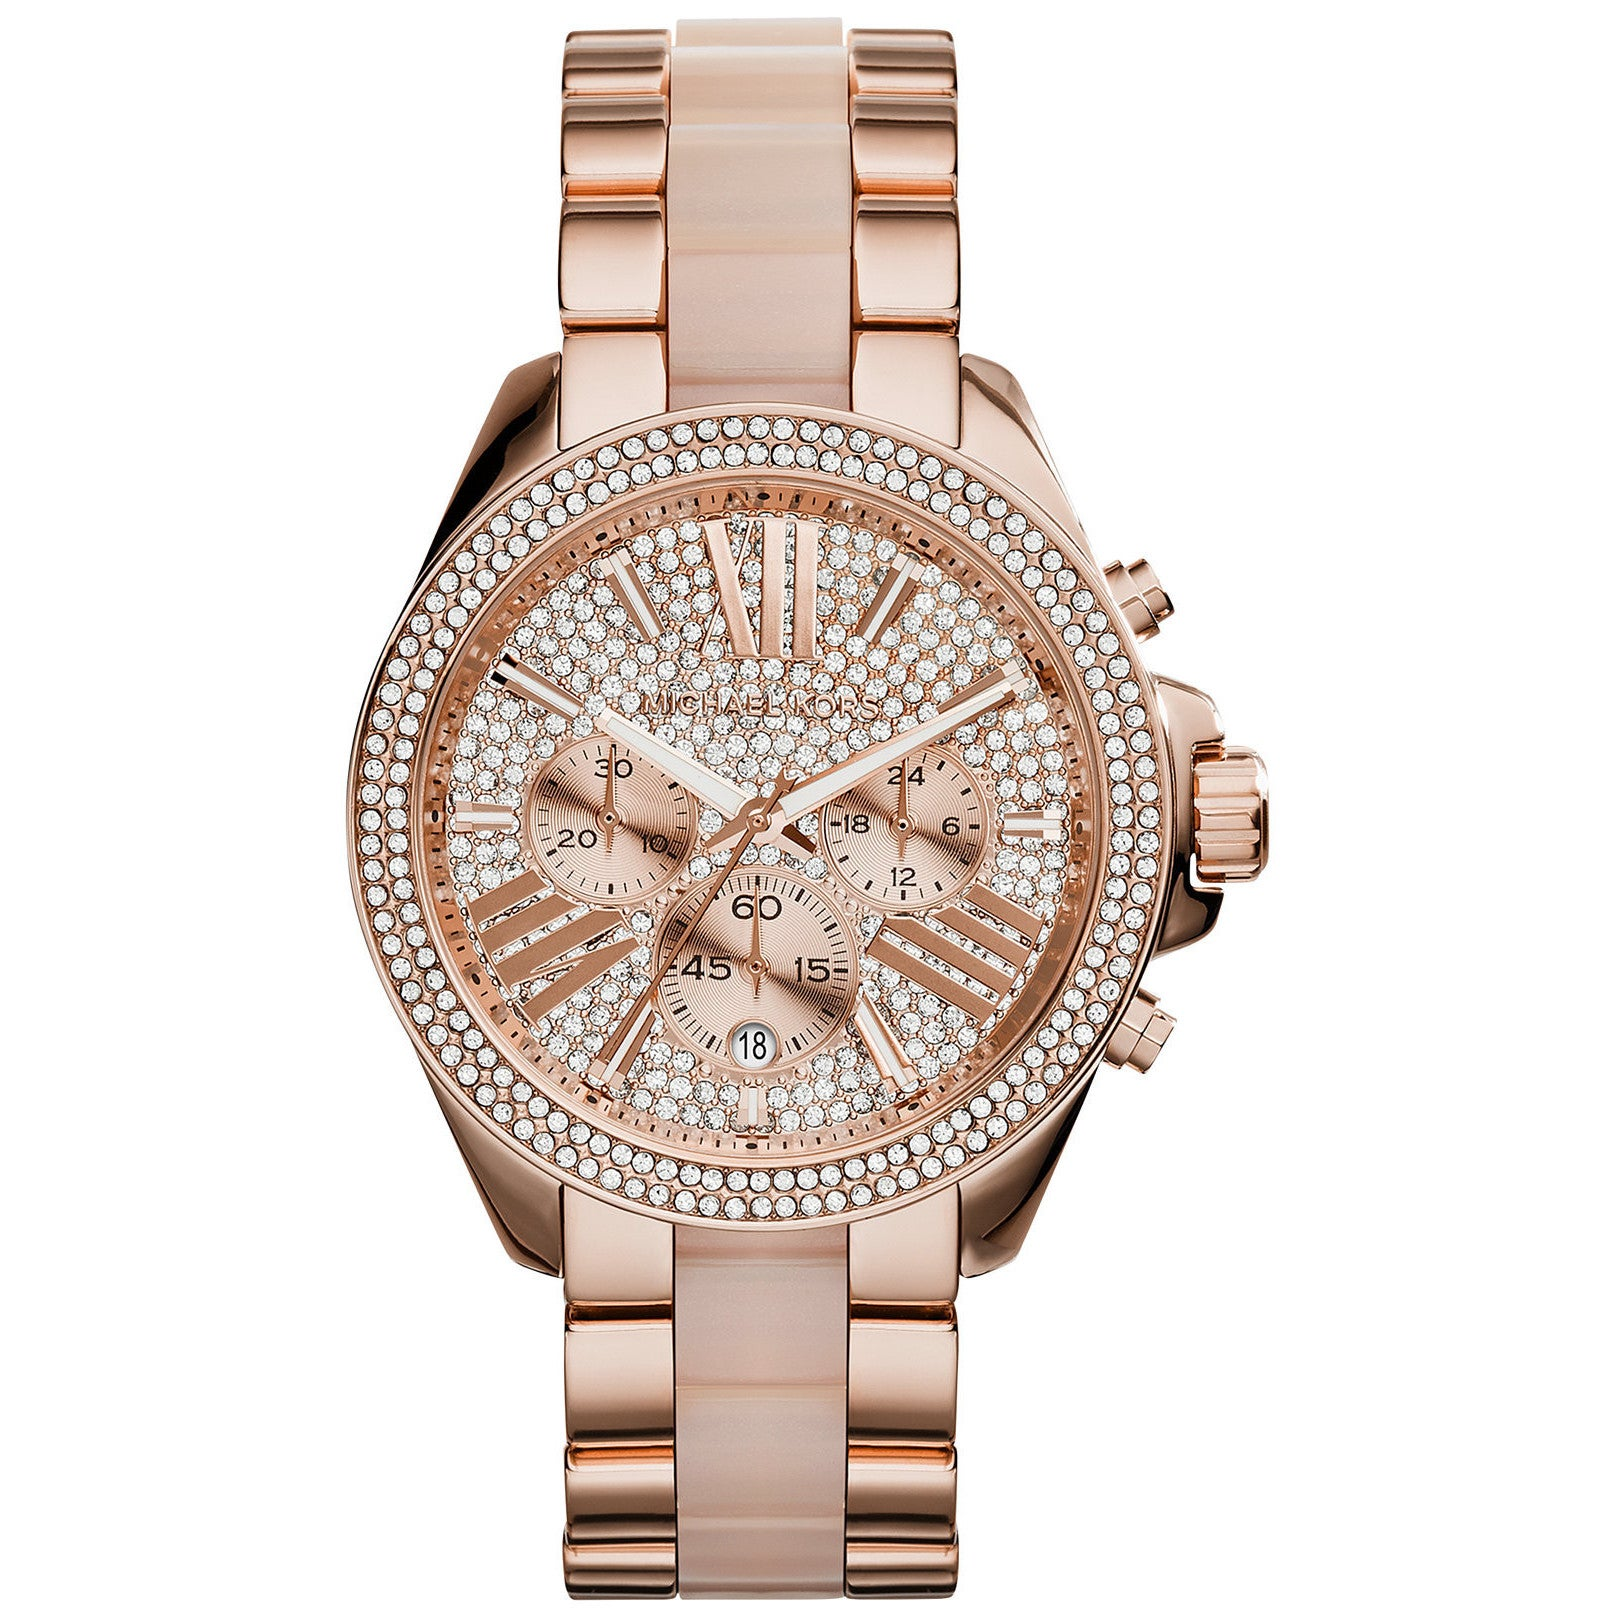 6985d848242af Michael Kors Women s MK6096  Wren  Chronograph Crystal Rose Gold Tone  Stainless Steel Watch - Pink